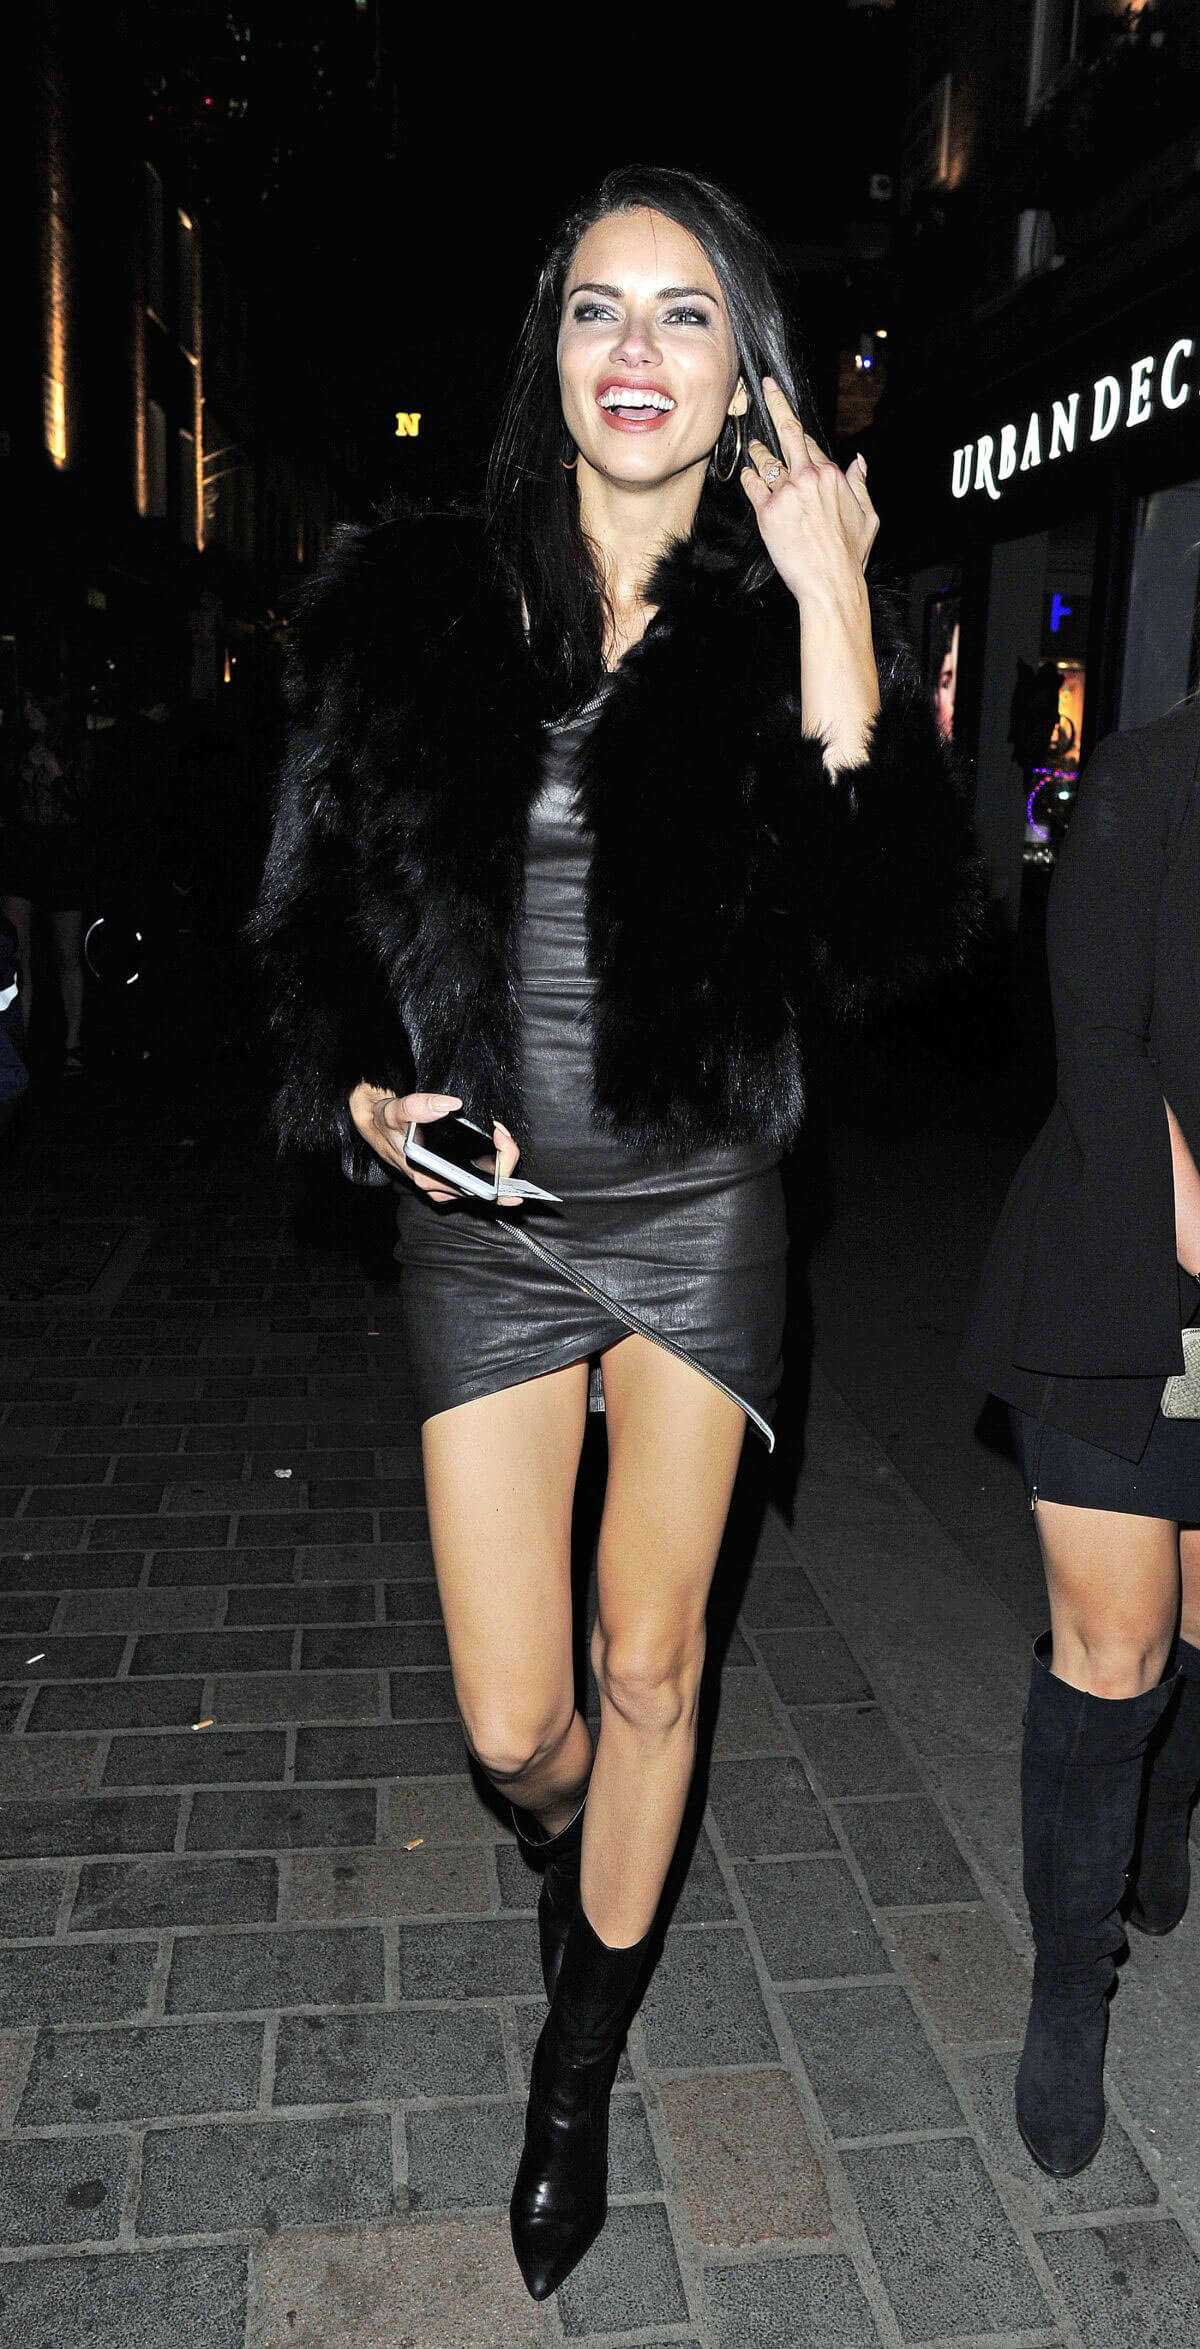 Adriana Lima Stills Night Out In London